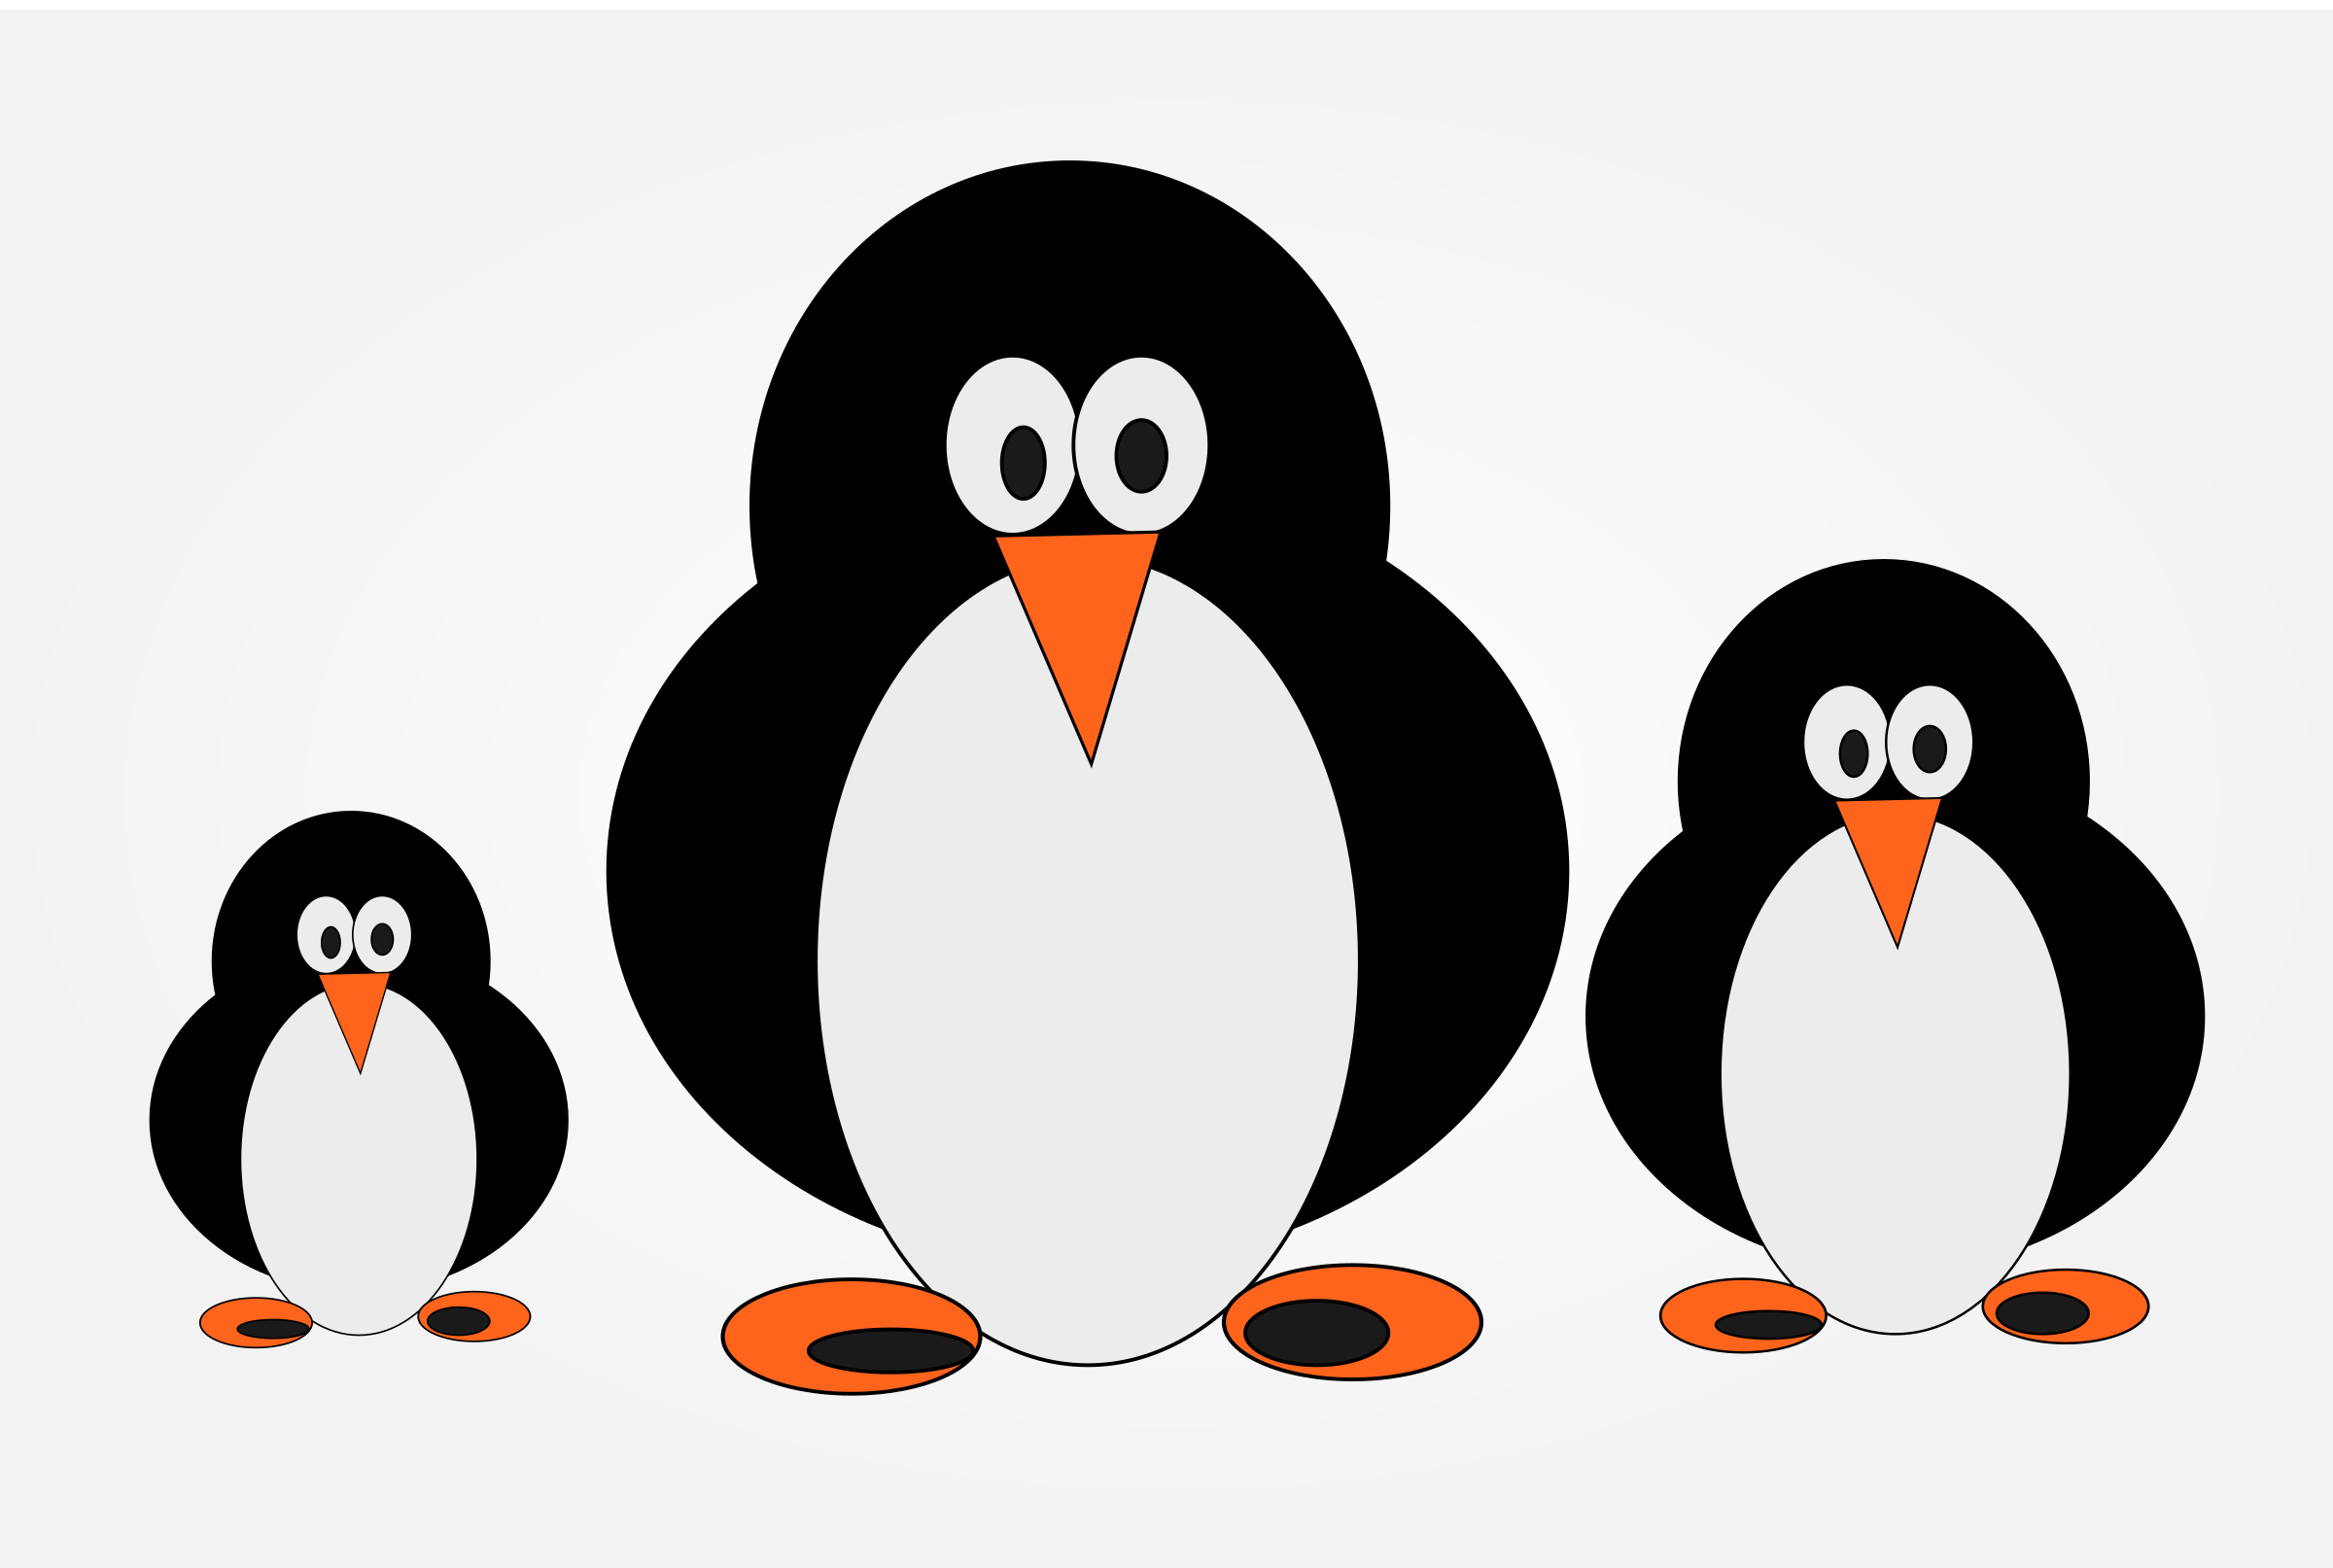 penguin family by techwalkers